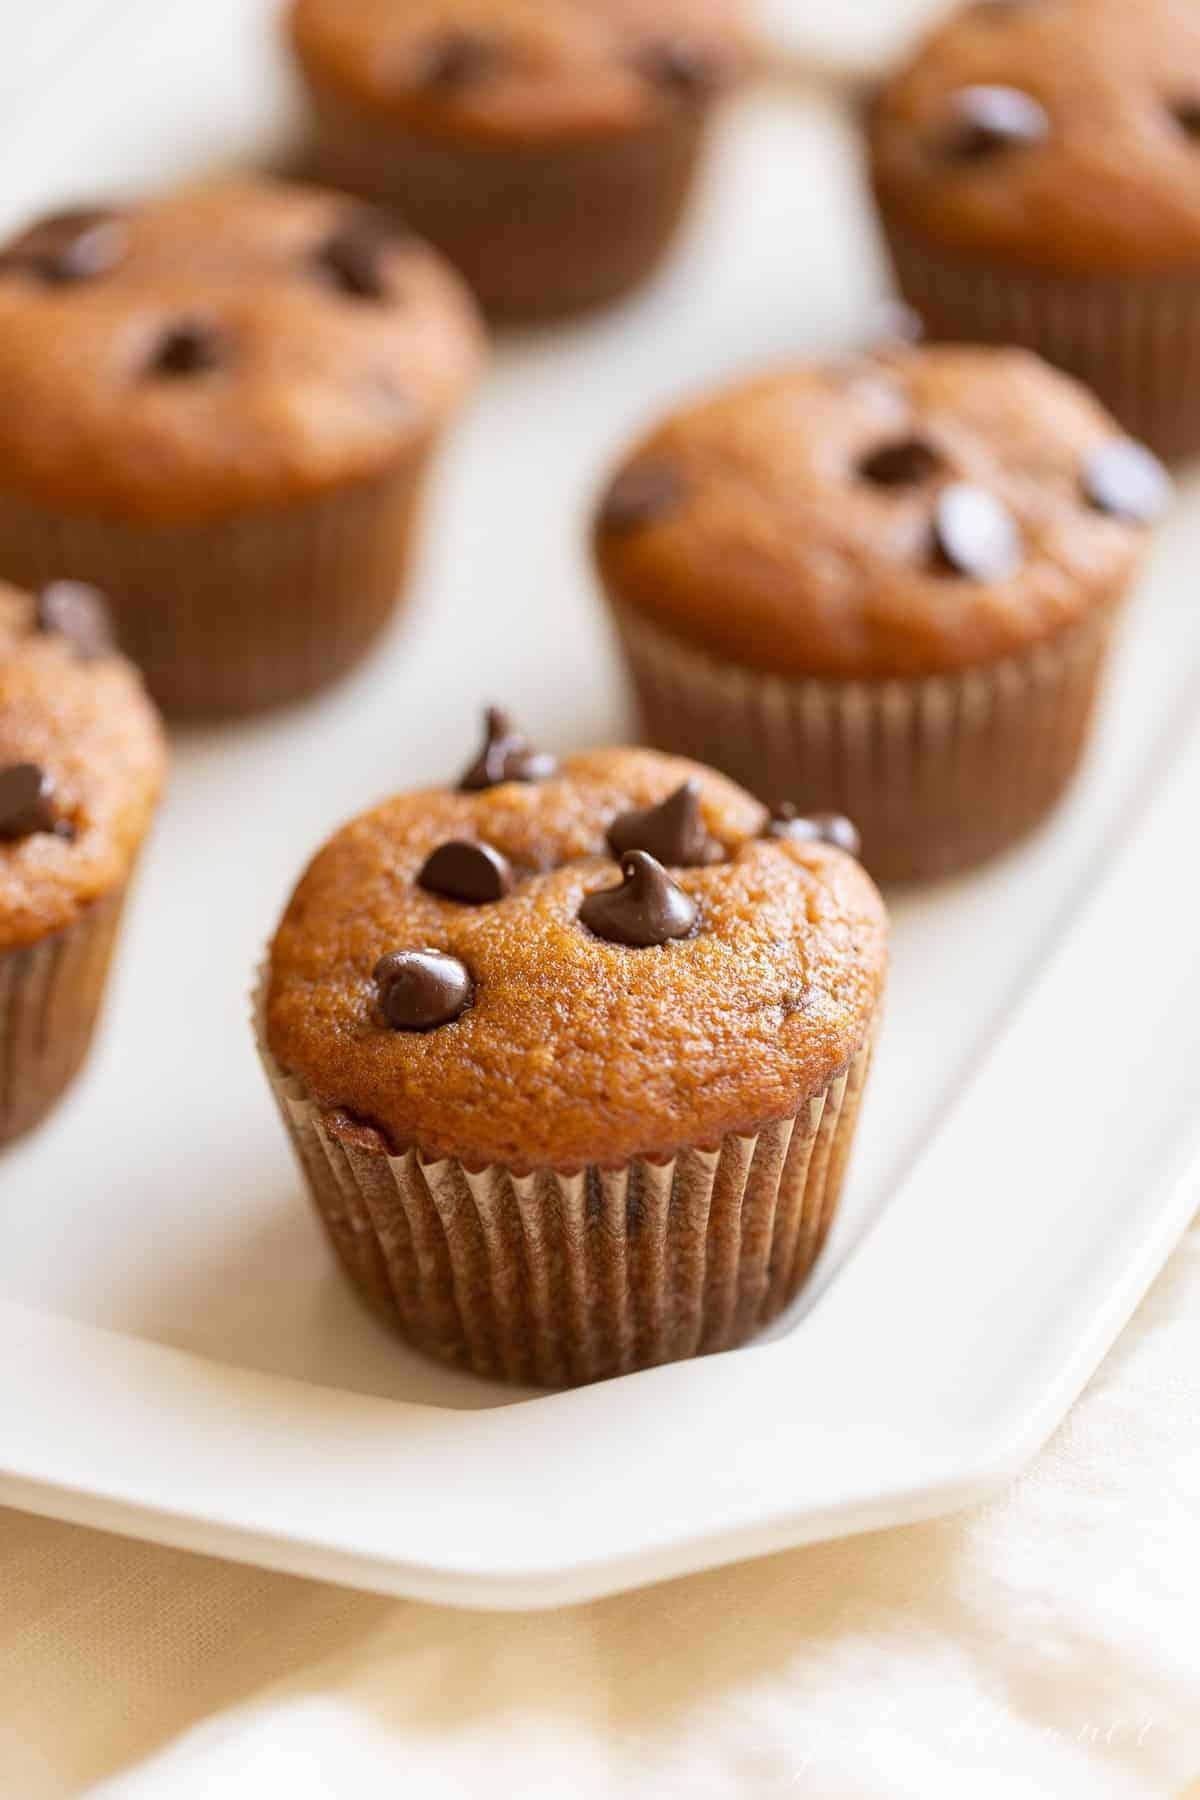 muffins made with pumpkin and chocolate chips on a platter